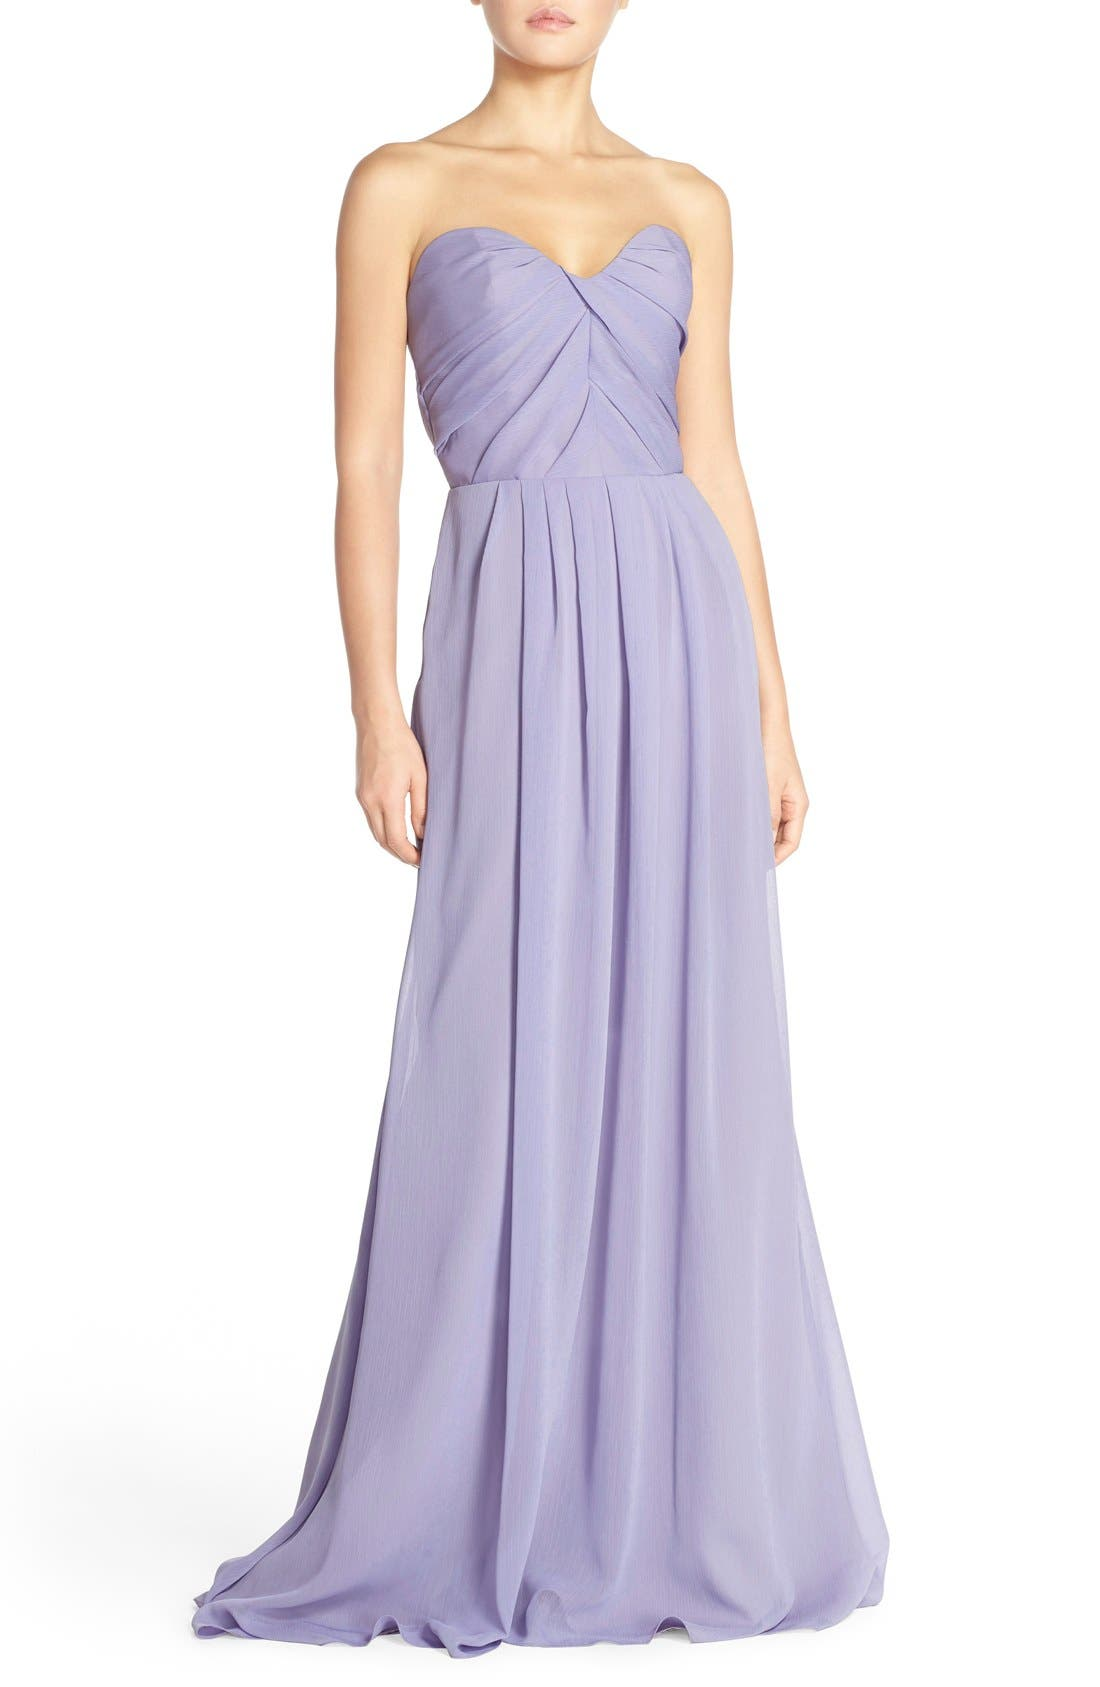 Alternate Image 1 Selected - Hayley Paige Occasions Strapless Crinkle Chiffon A-Line Gown